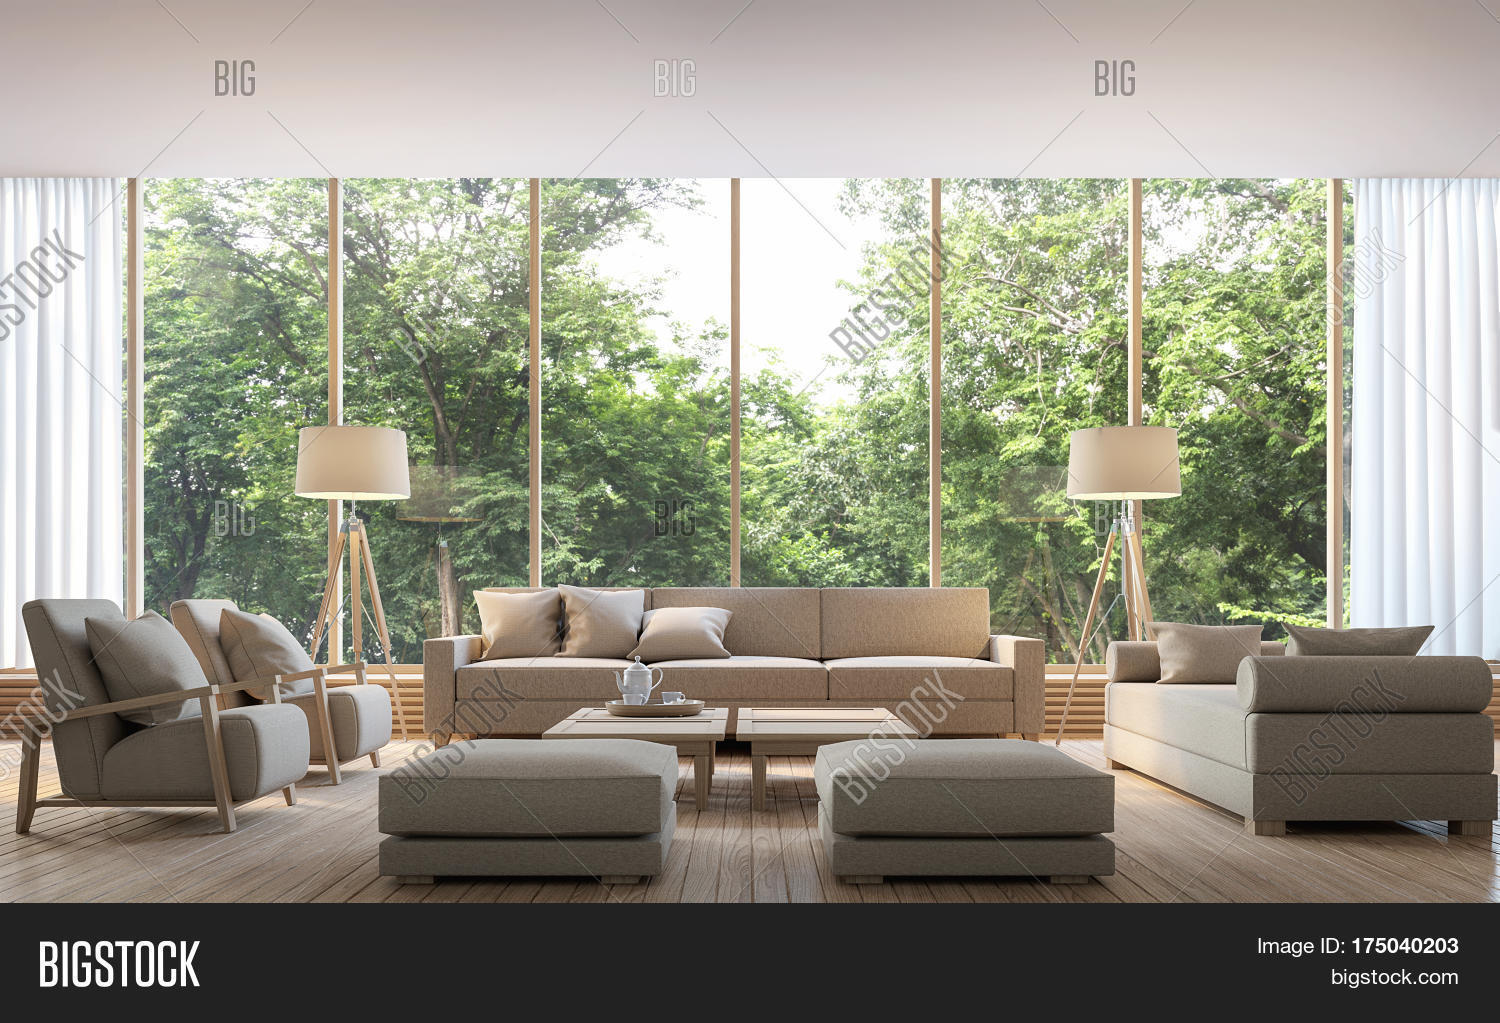 Modern Living Room Nature View 3d Image & Photo | Bigstock